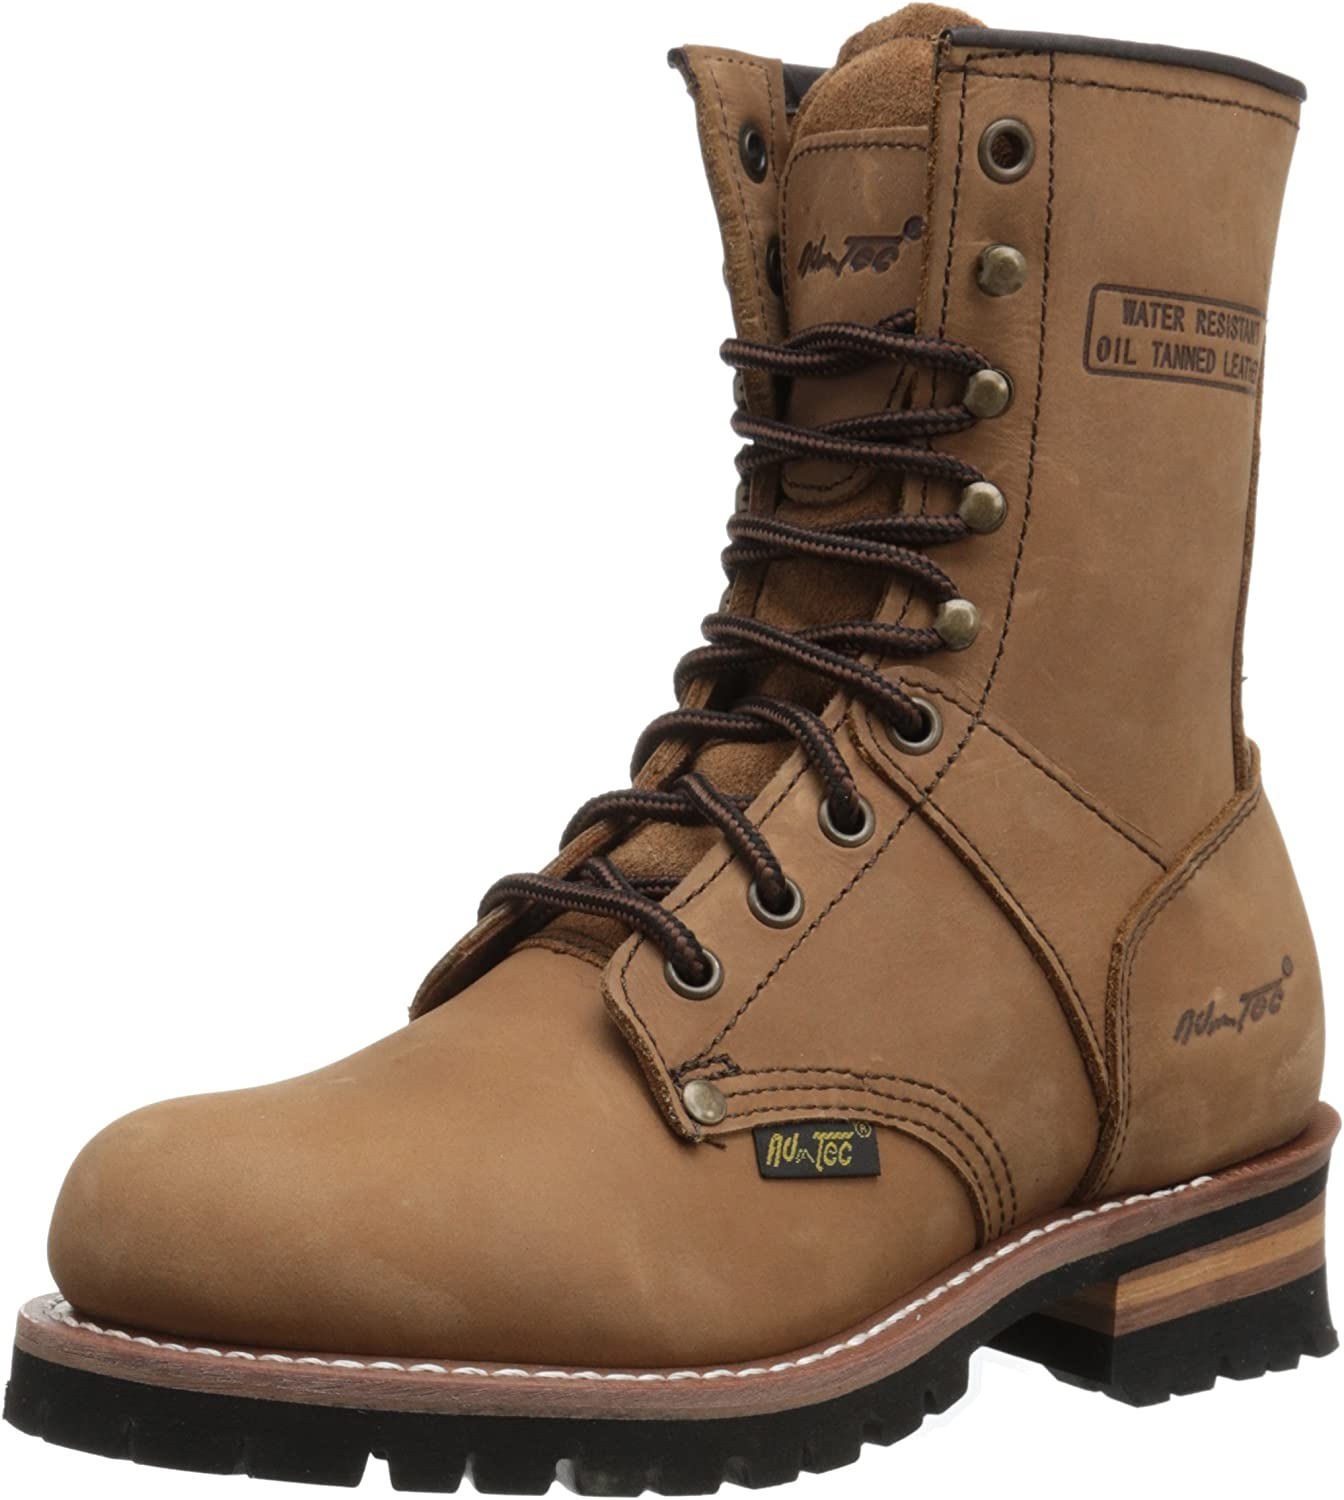 "AdTec womens Women's 9"" Brown-w Logger Boot, Brown, 7.5 US"